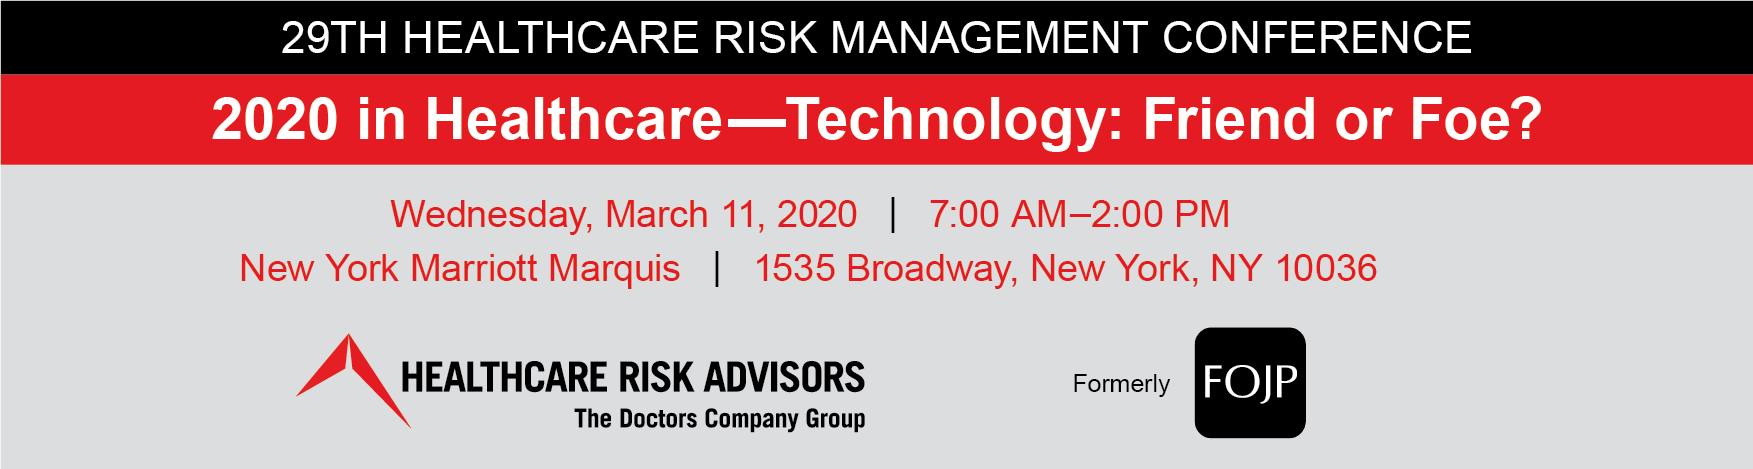 The 29th Healthcare Risk Management/Patient Safety Conference: 2020 in Healthcare - Technology: Friend or Foe?